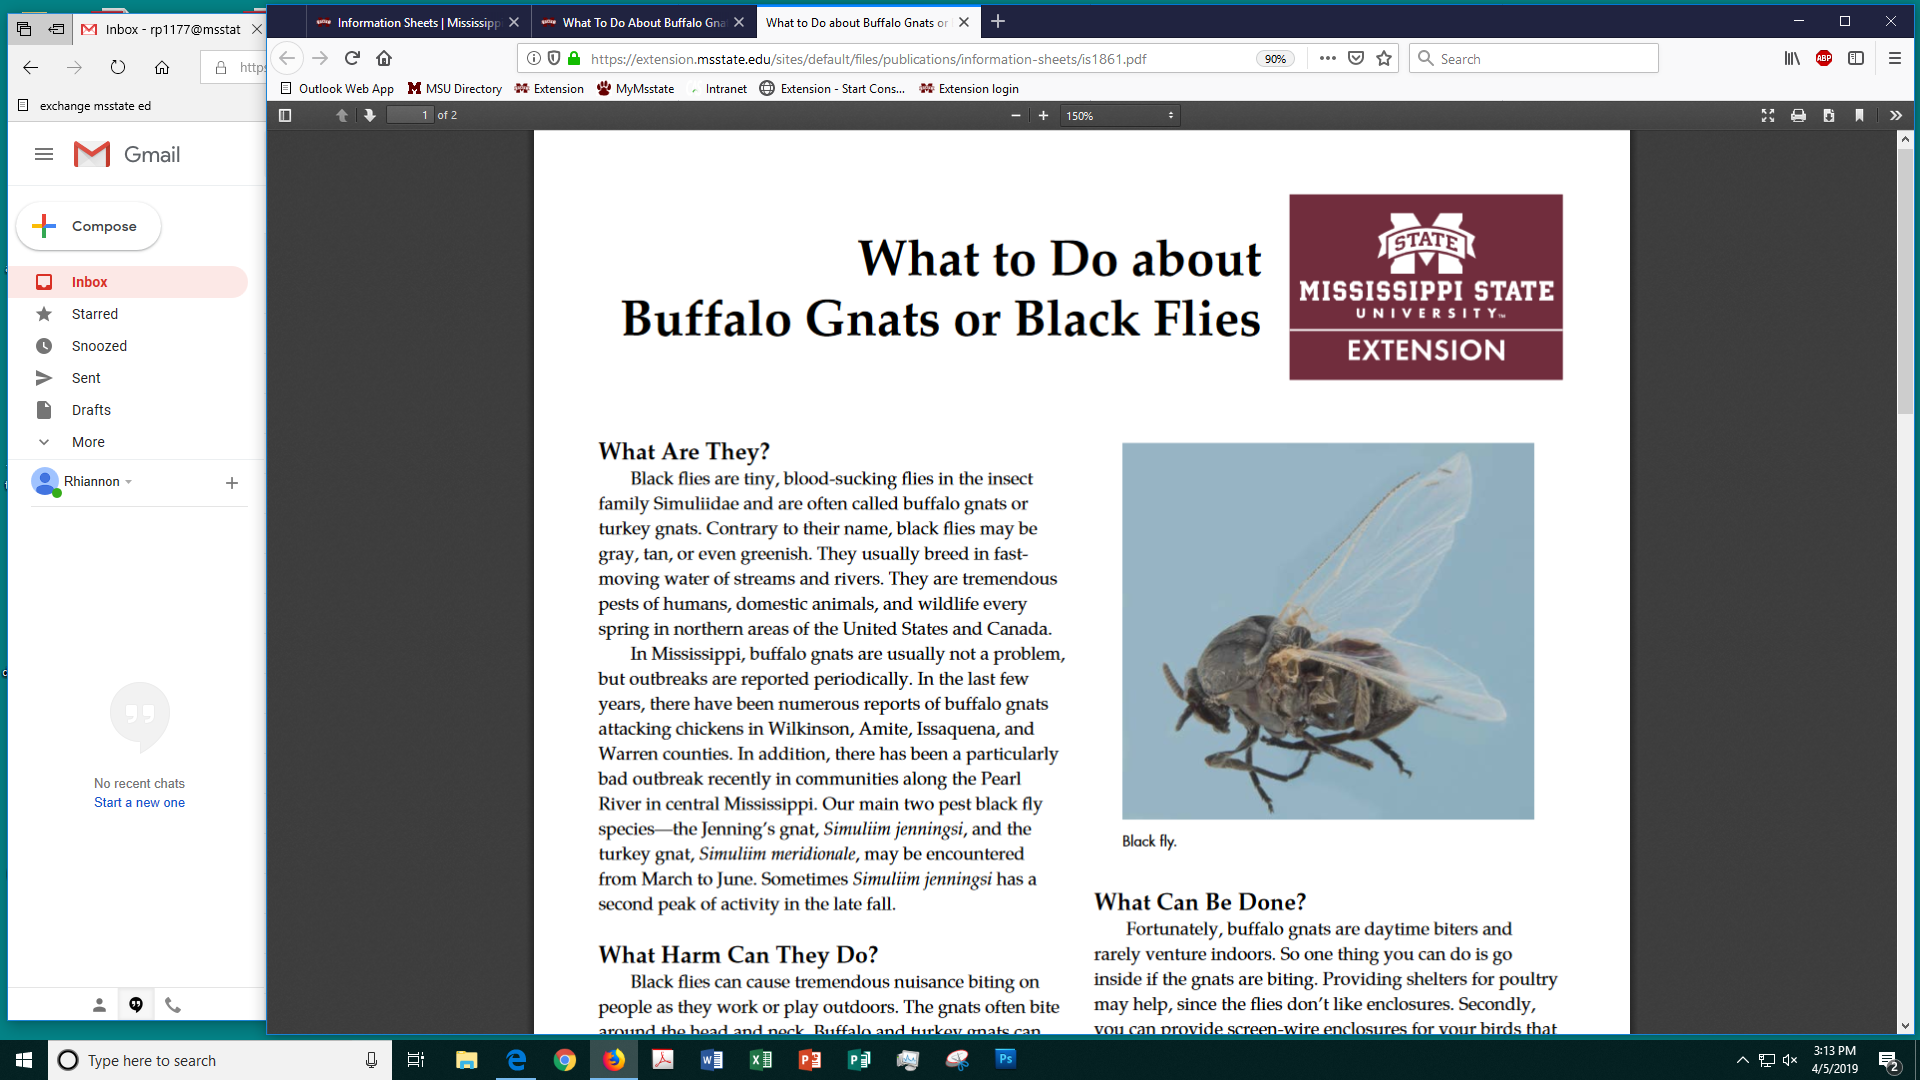 What To Do About Buffalo Gnats or Black Flies | Mississippi